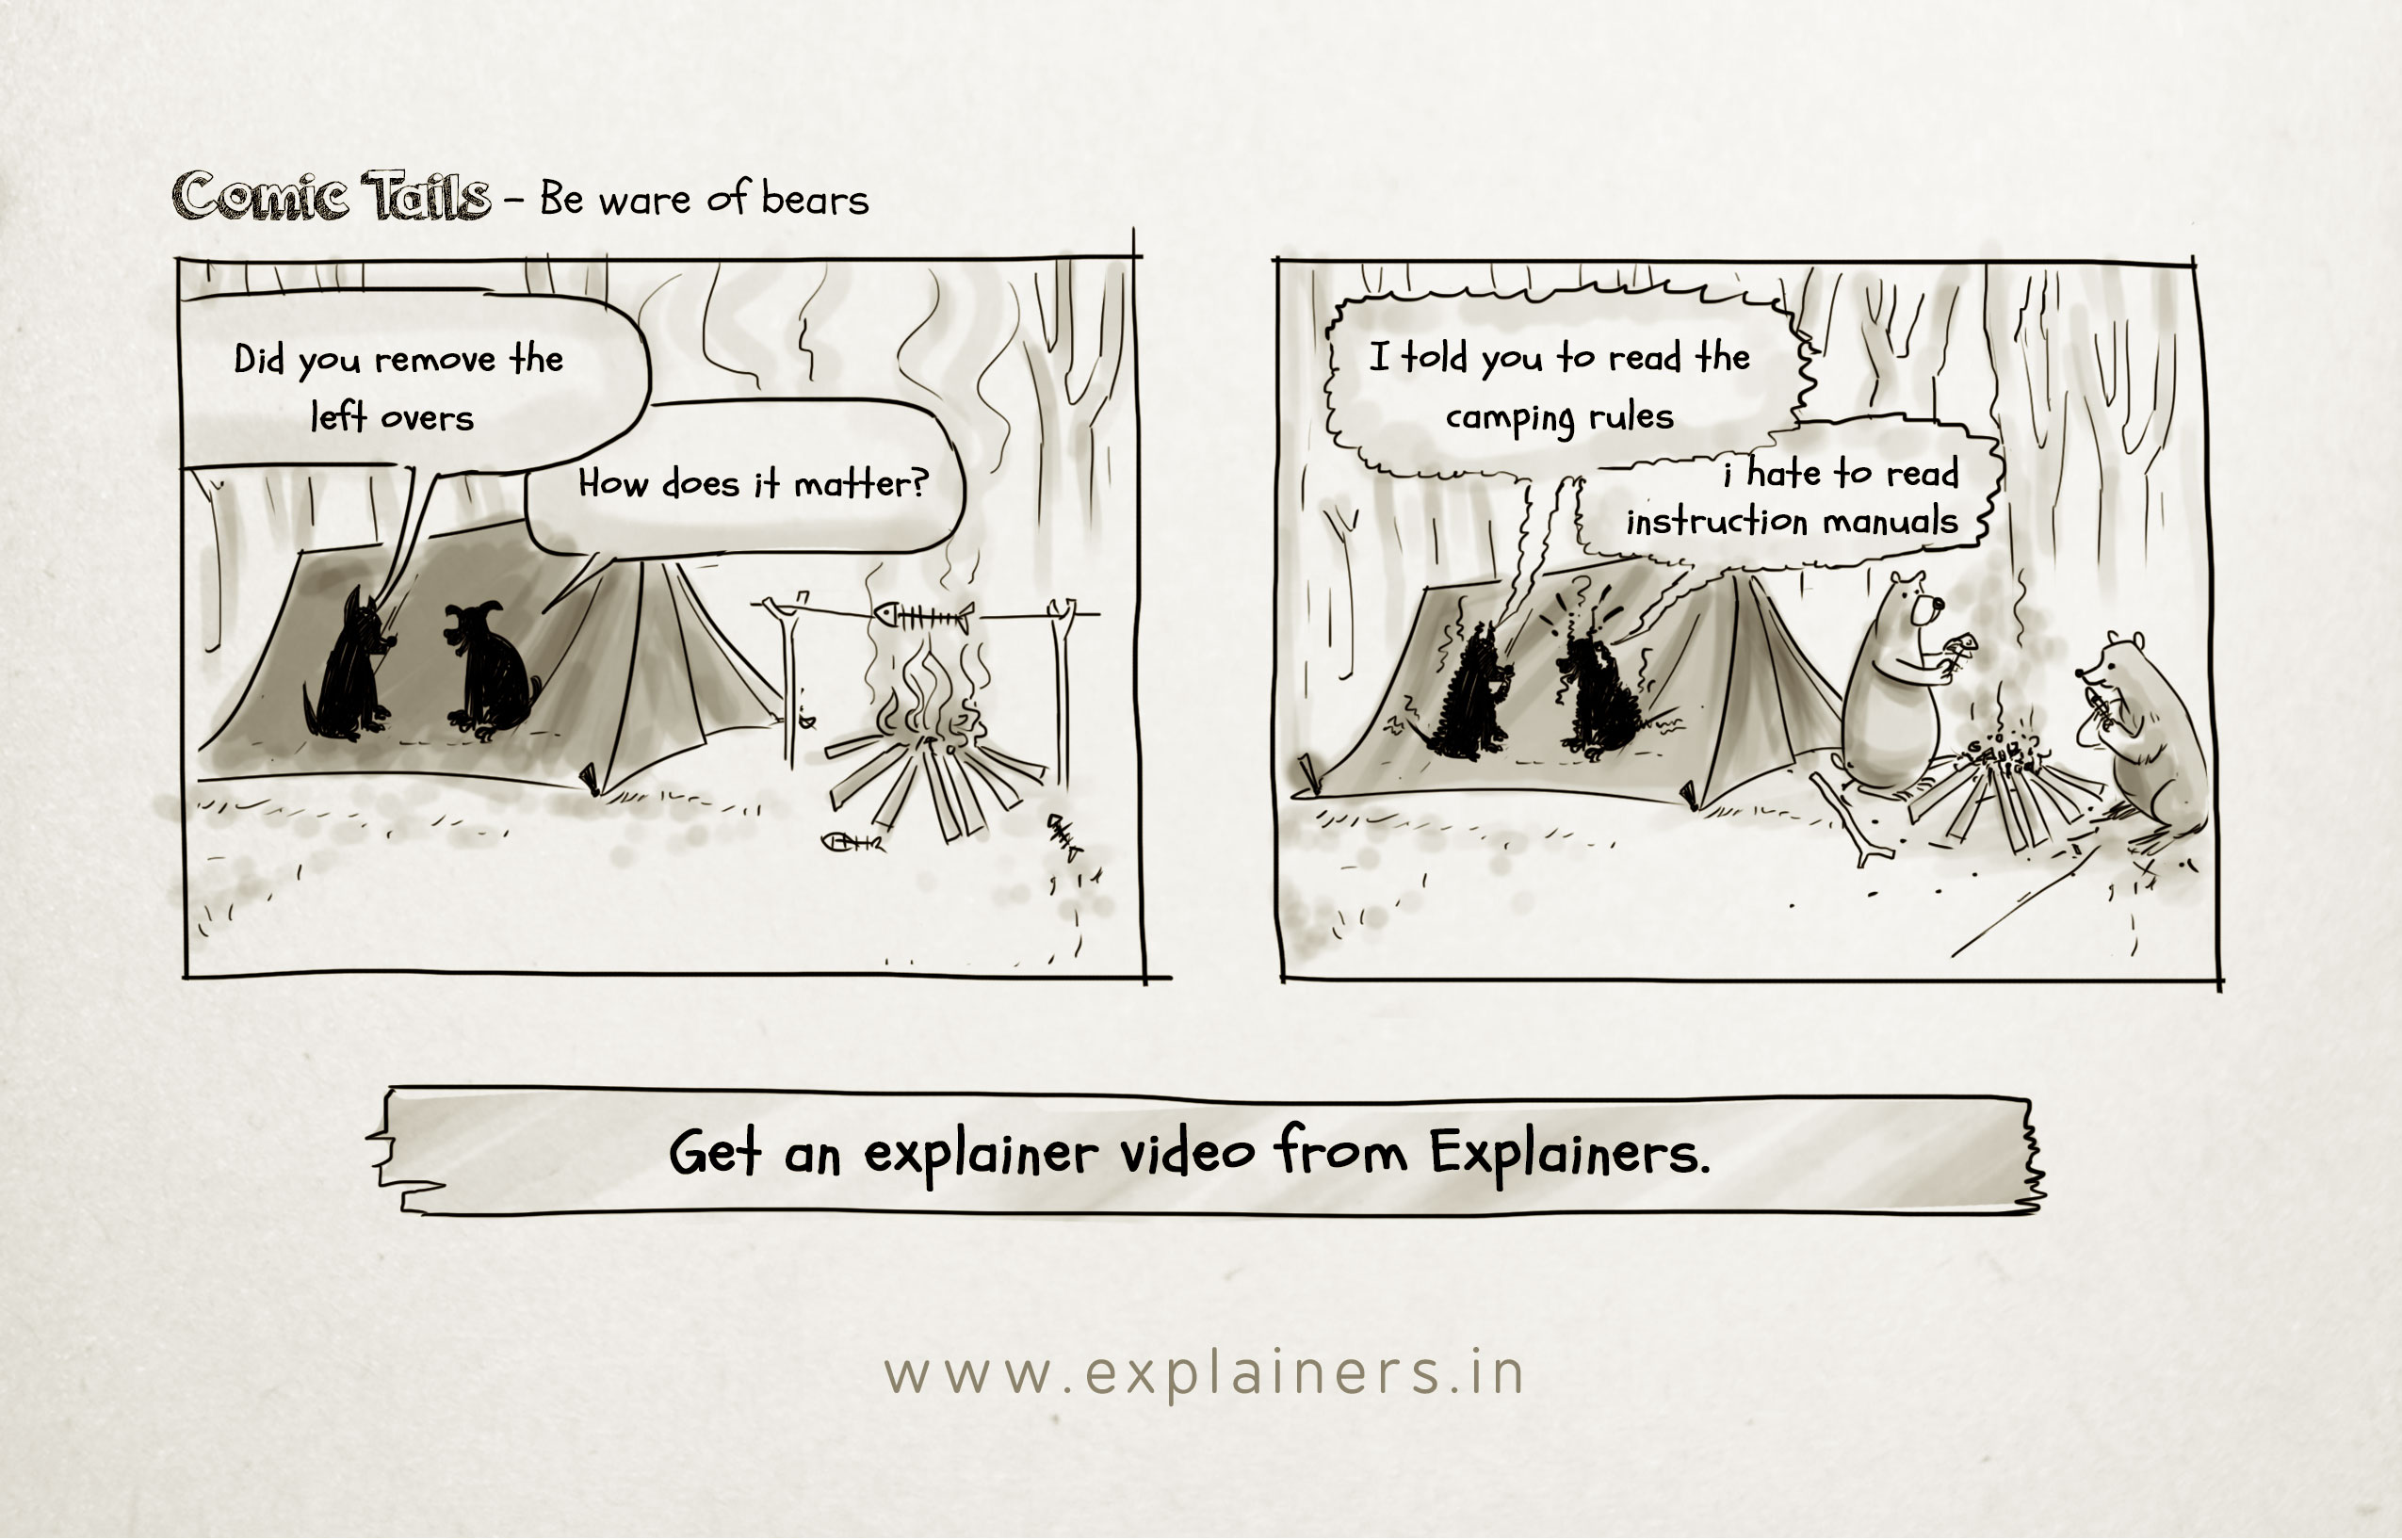 Explainers,Explainer video, webcomic, comic tails, animated explainer video, animation video